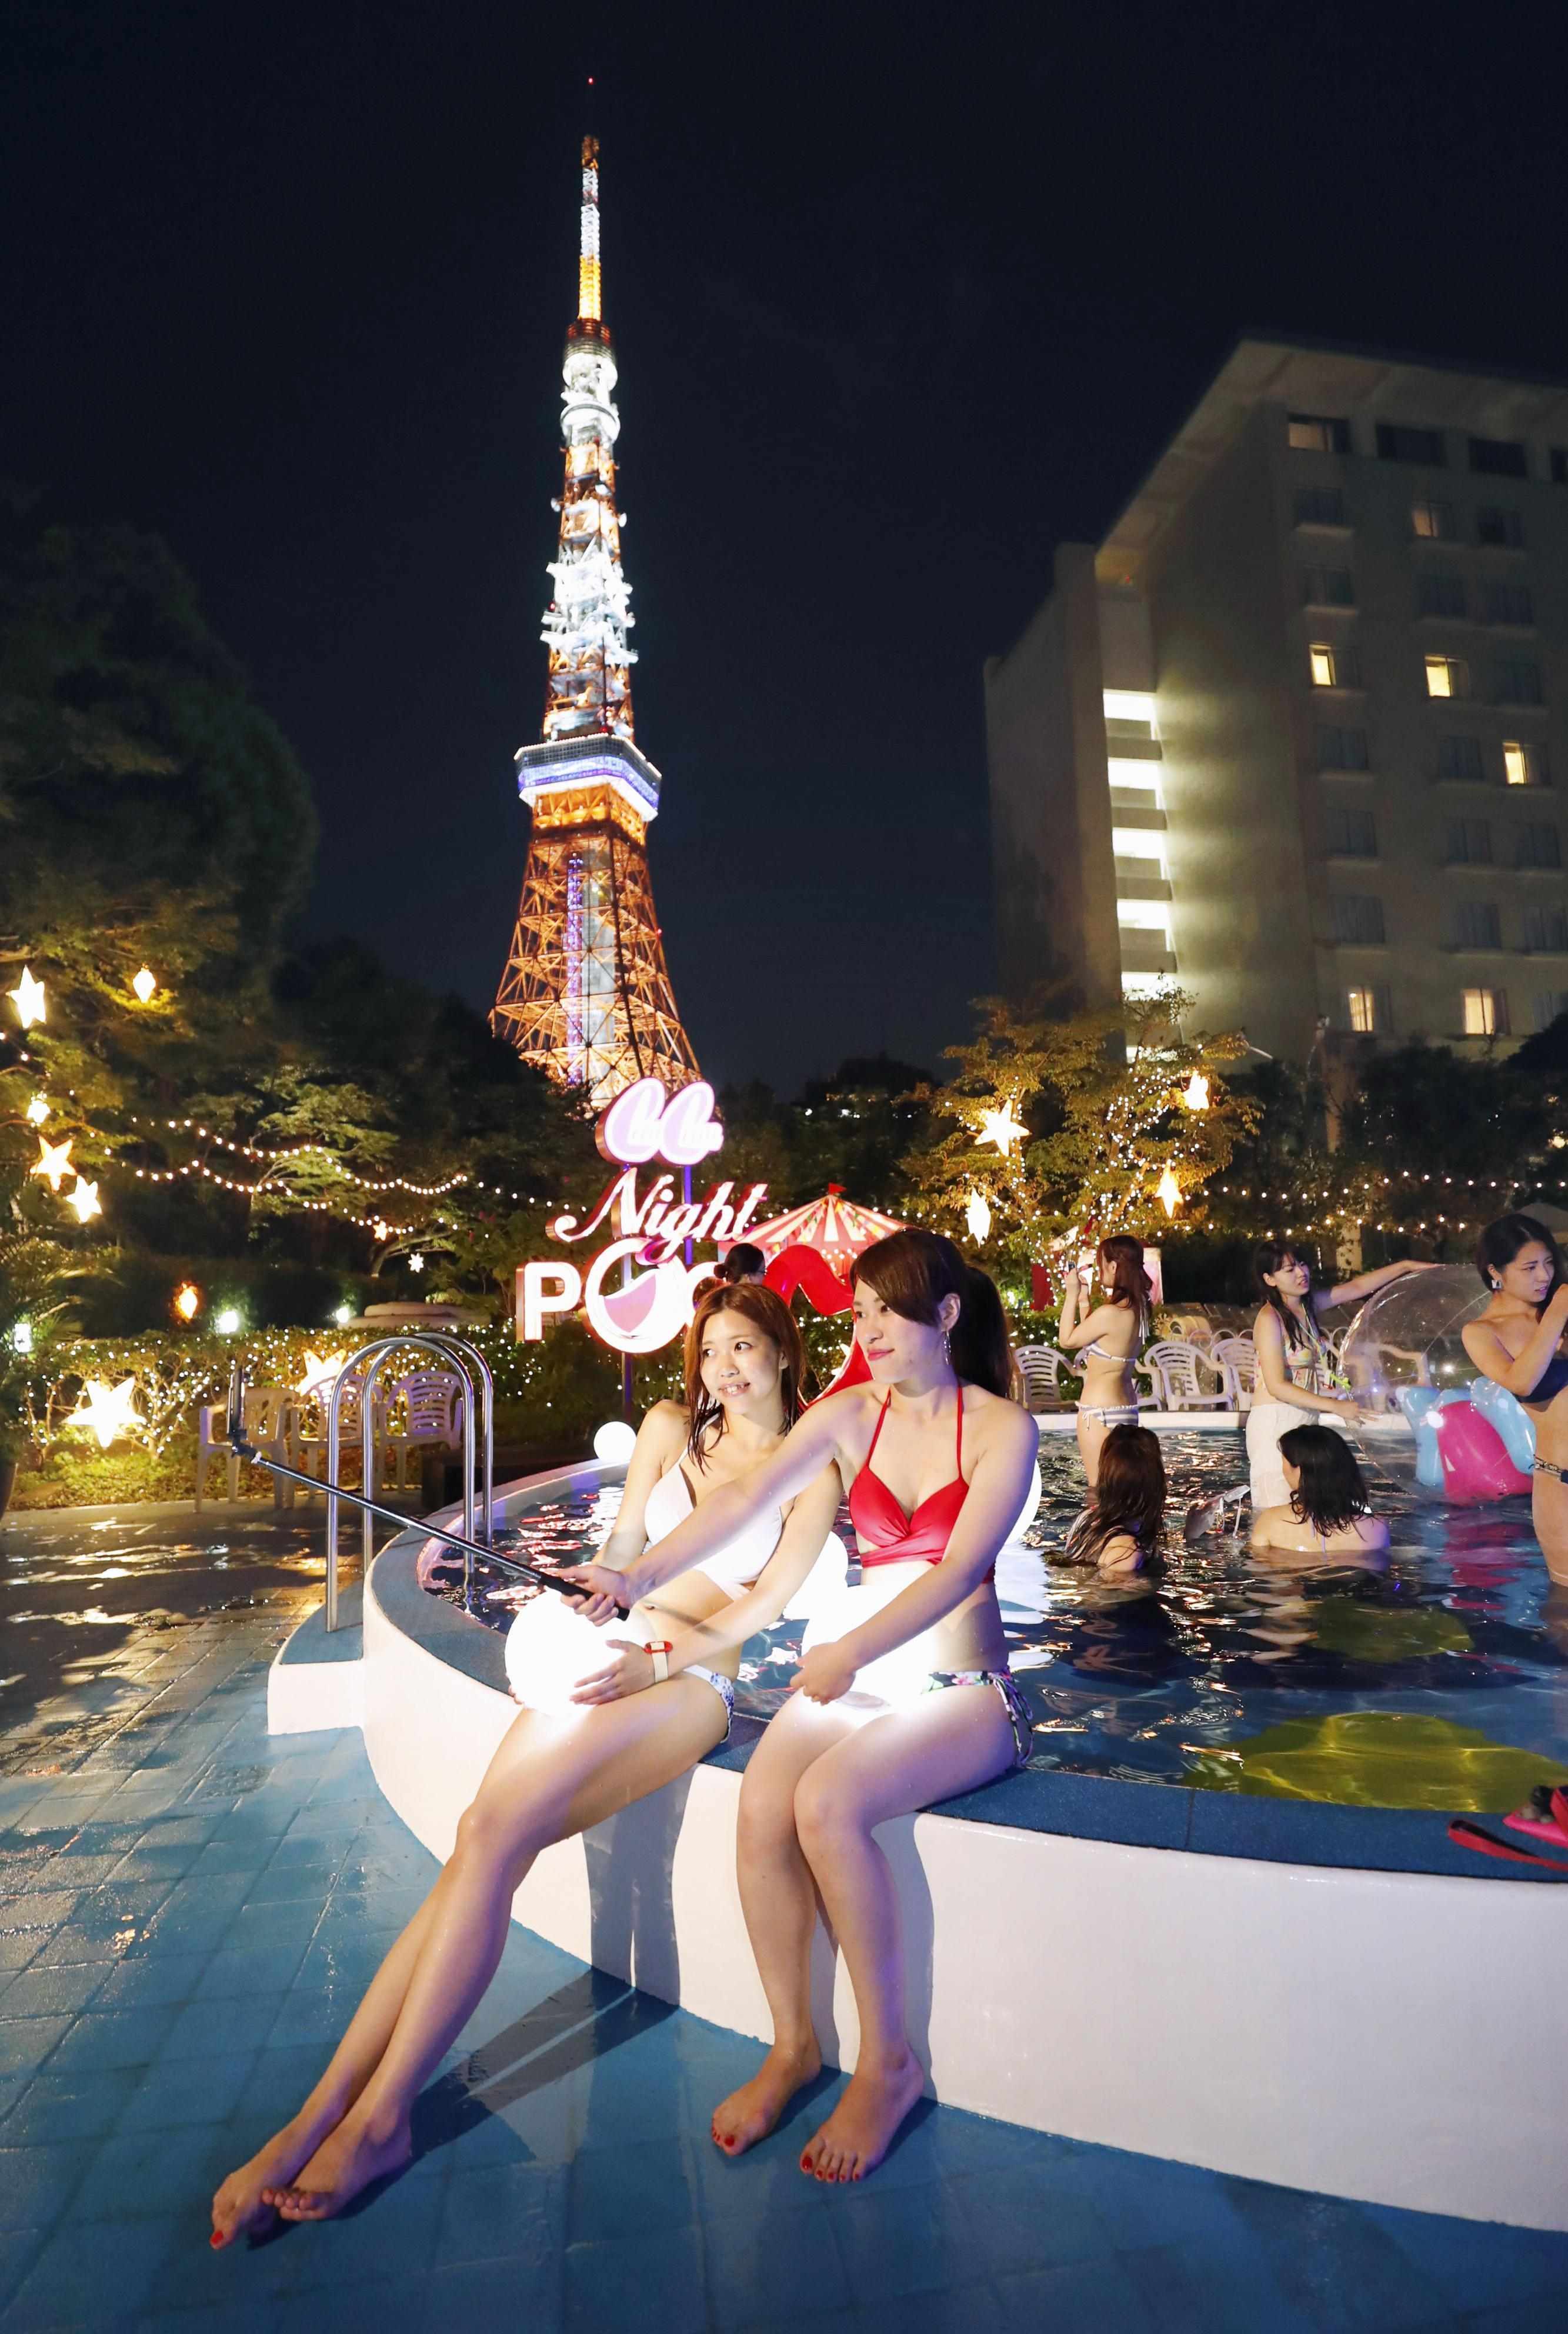 """Night pools"" all the rage among young women on social media"